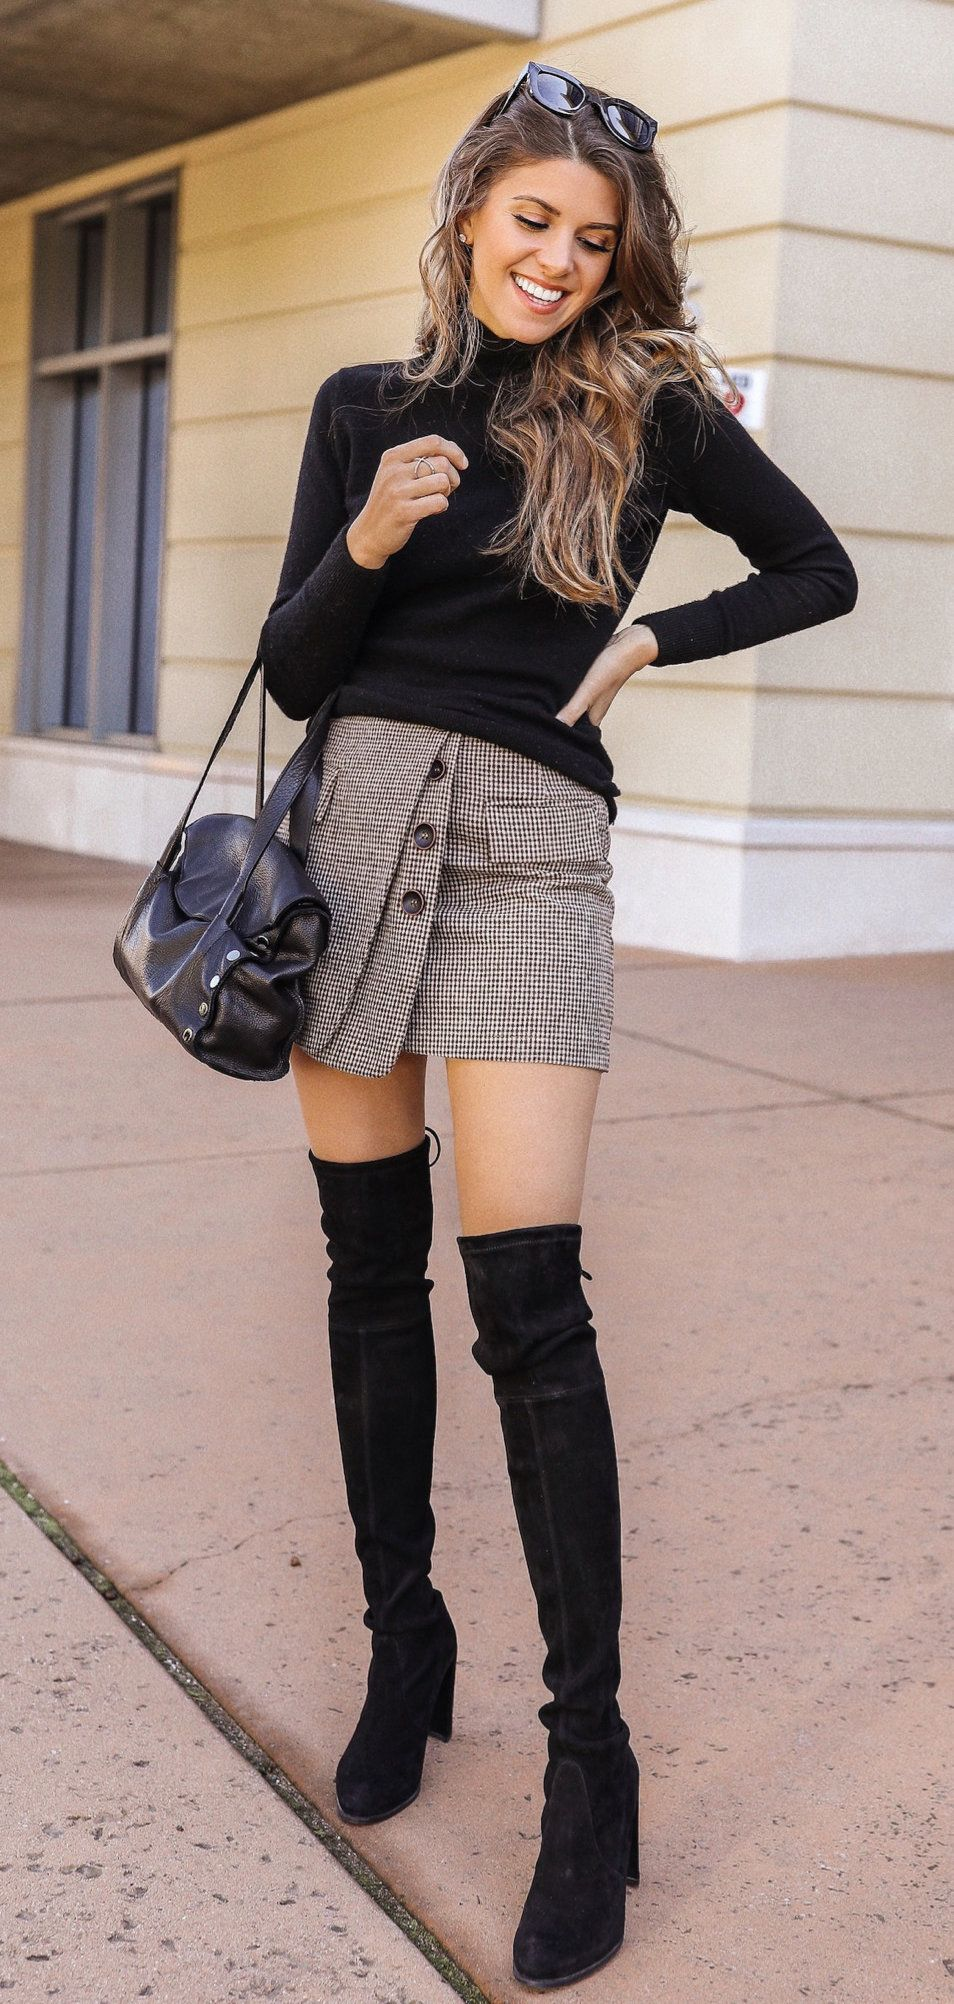 Black Knee High Boots Spring Outfits Spring Outfits High Knee Boots Outfit Knee Boots Outfit [ 2004 x 954 Pixel ]